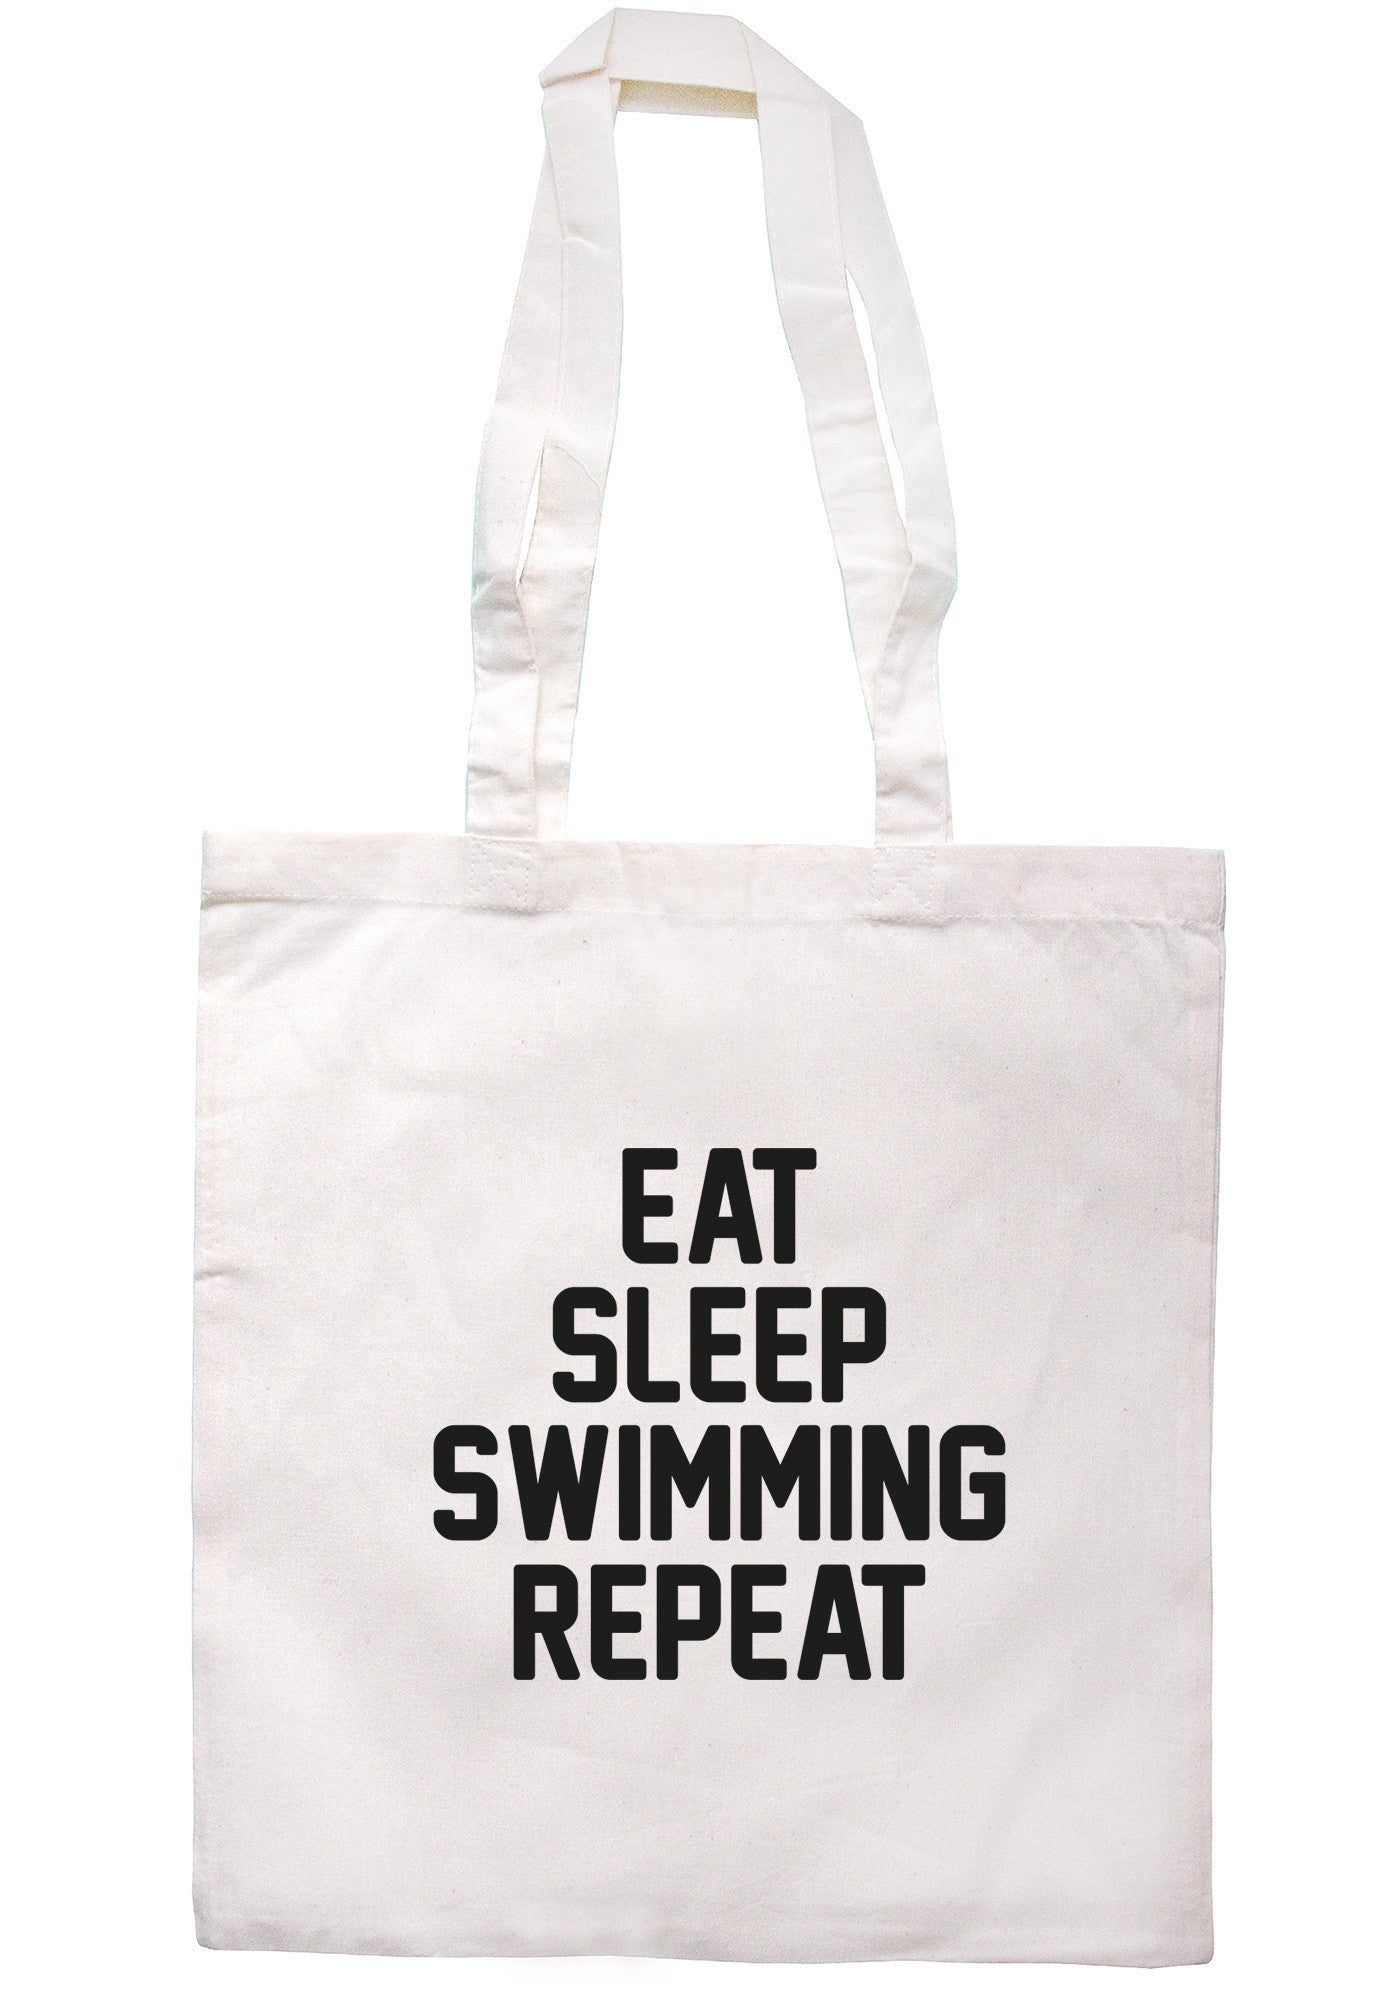 Eat Sleep Swimming Repeat Tote Bag TB0678 - Illustrated Identity Ltd.